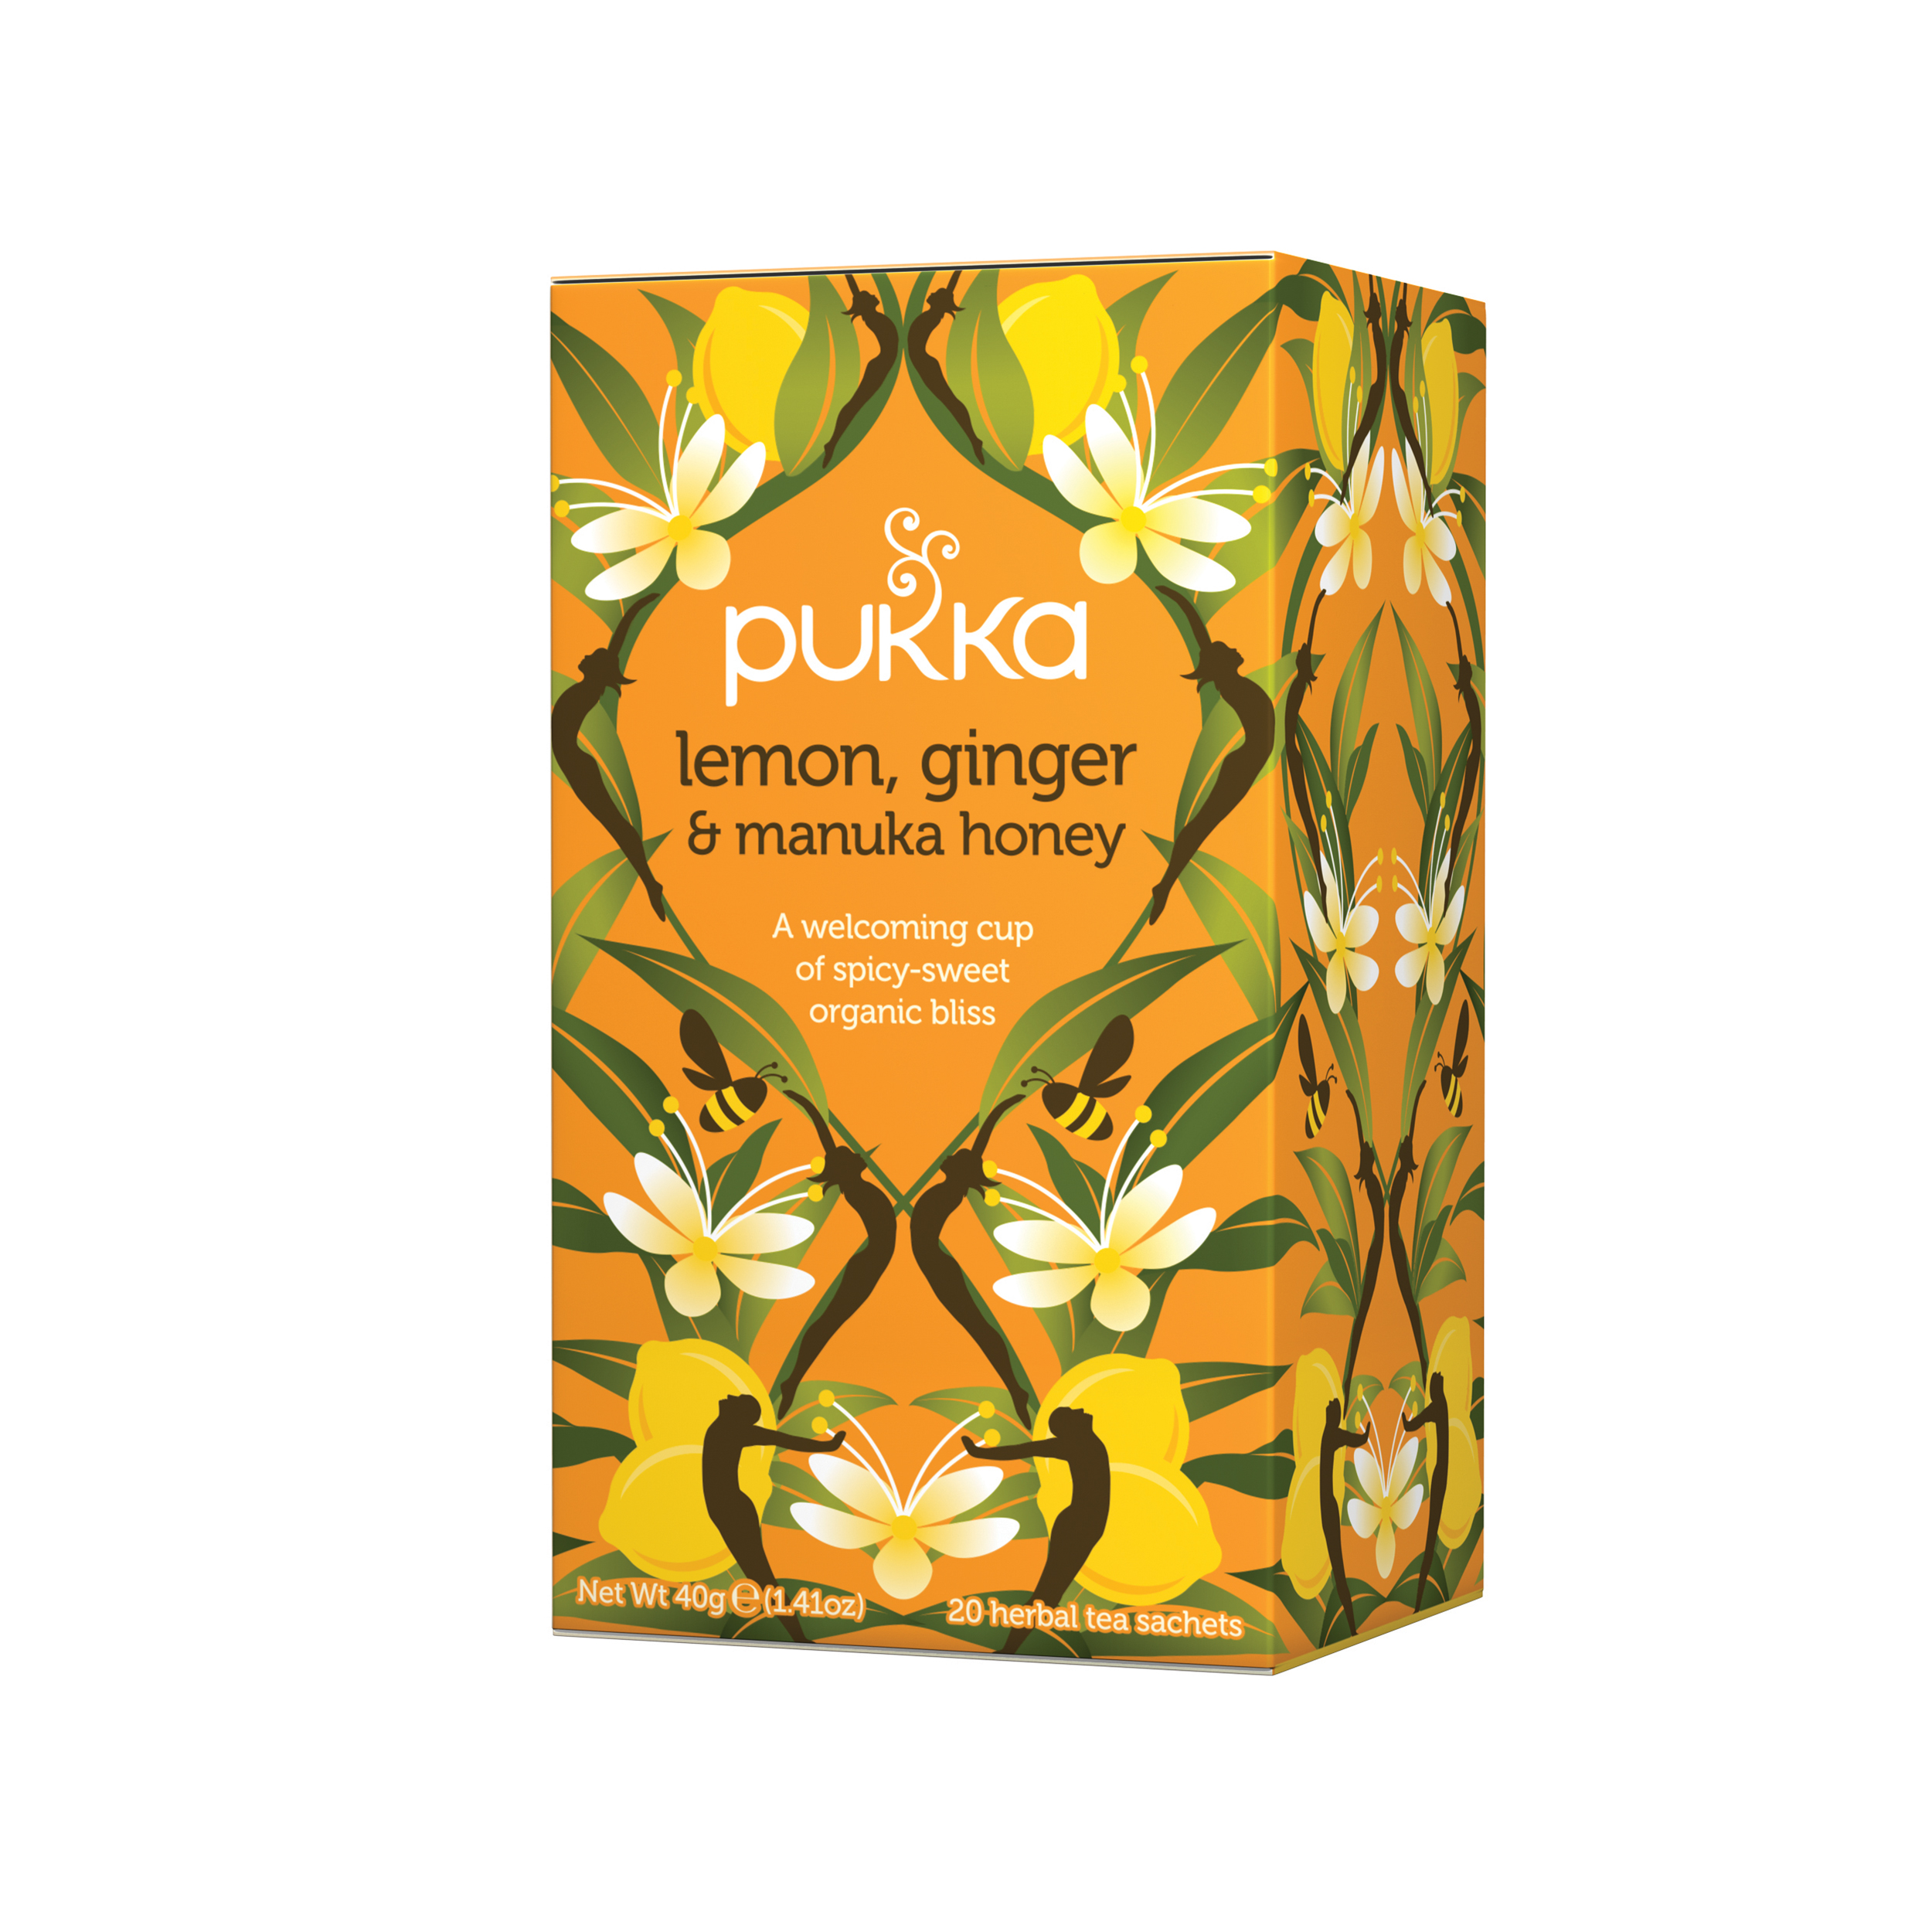 Tea bags Pukka Individually Enveloped Tea Bags Lemon Ginger and Manuka Honey Ref 5060229011541 Pack 20